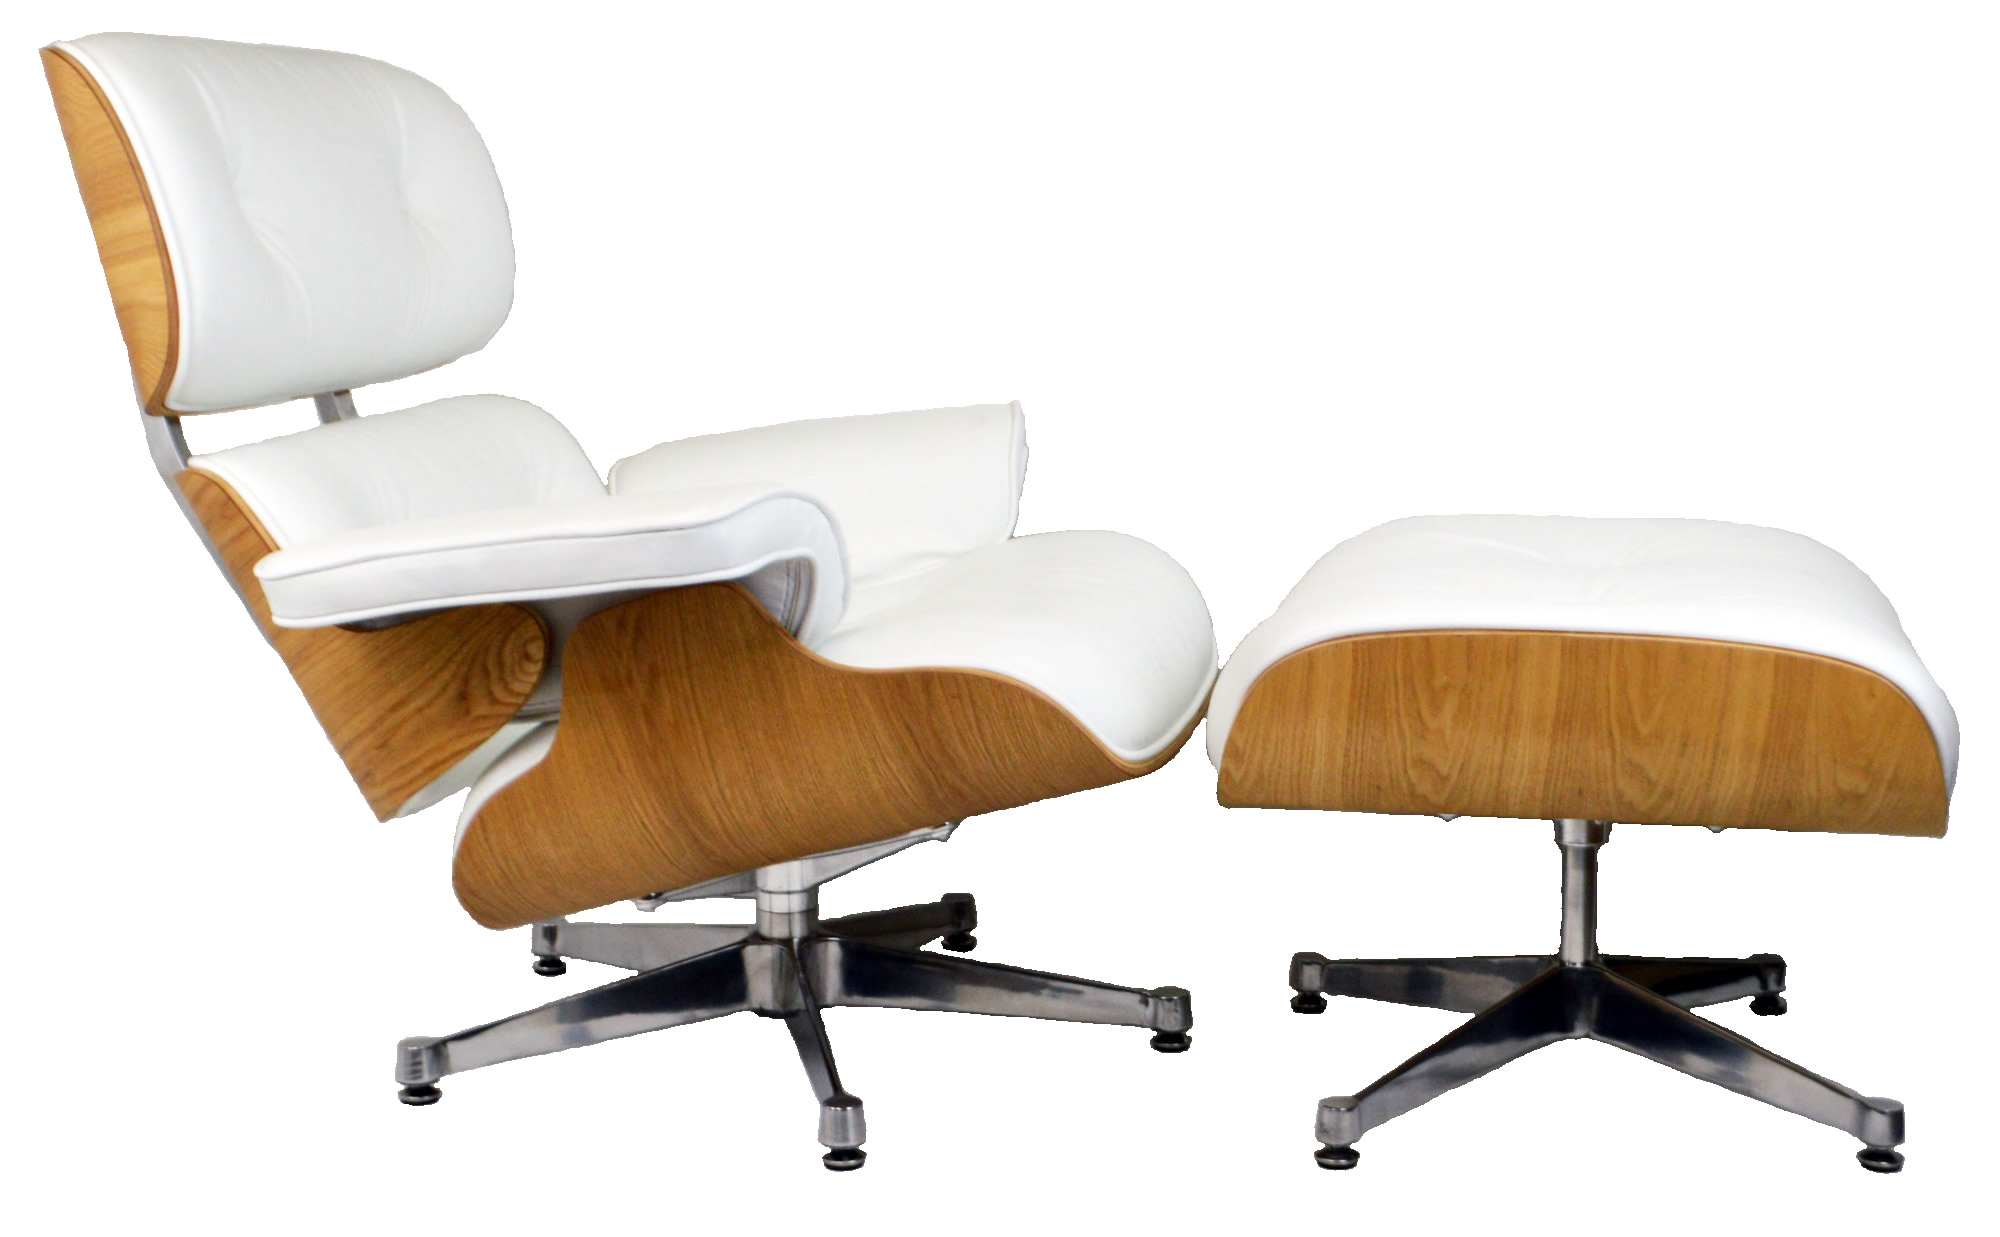 Charles Eames Lounge Chair Charles Eames Lounge Chair Ashwood White Leather - Charles Eames